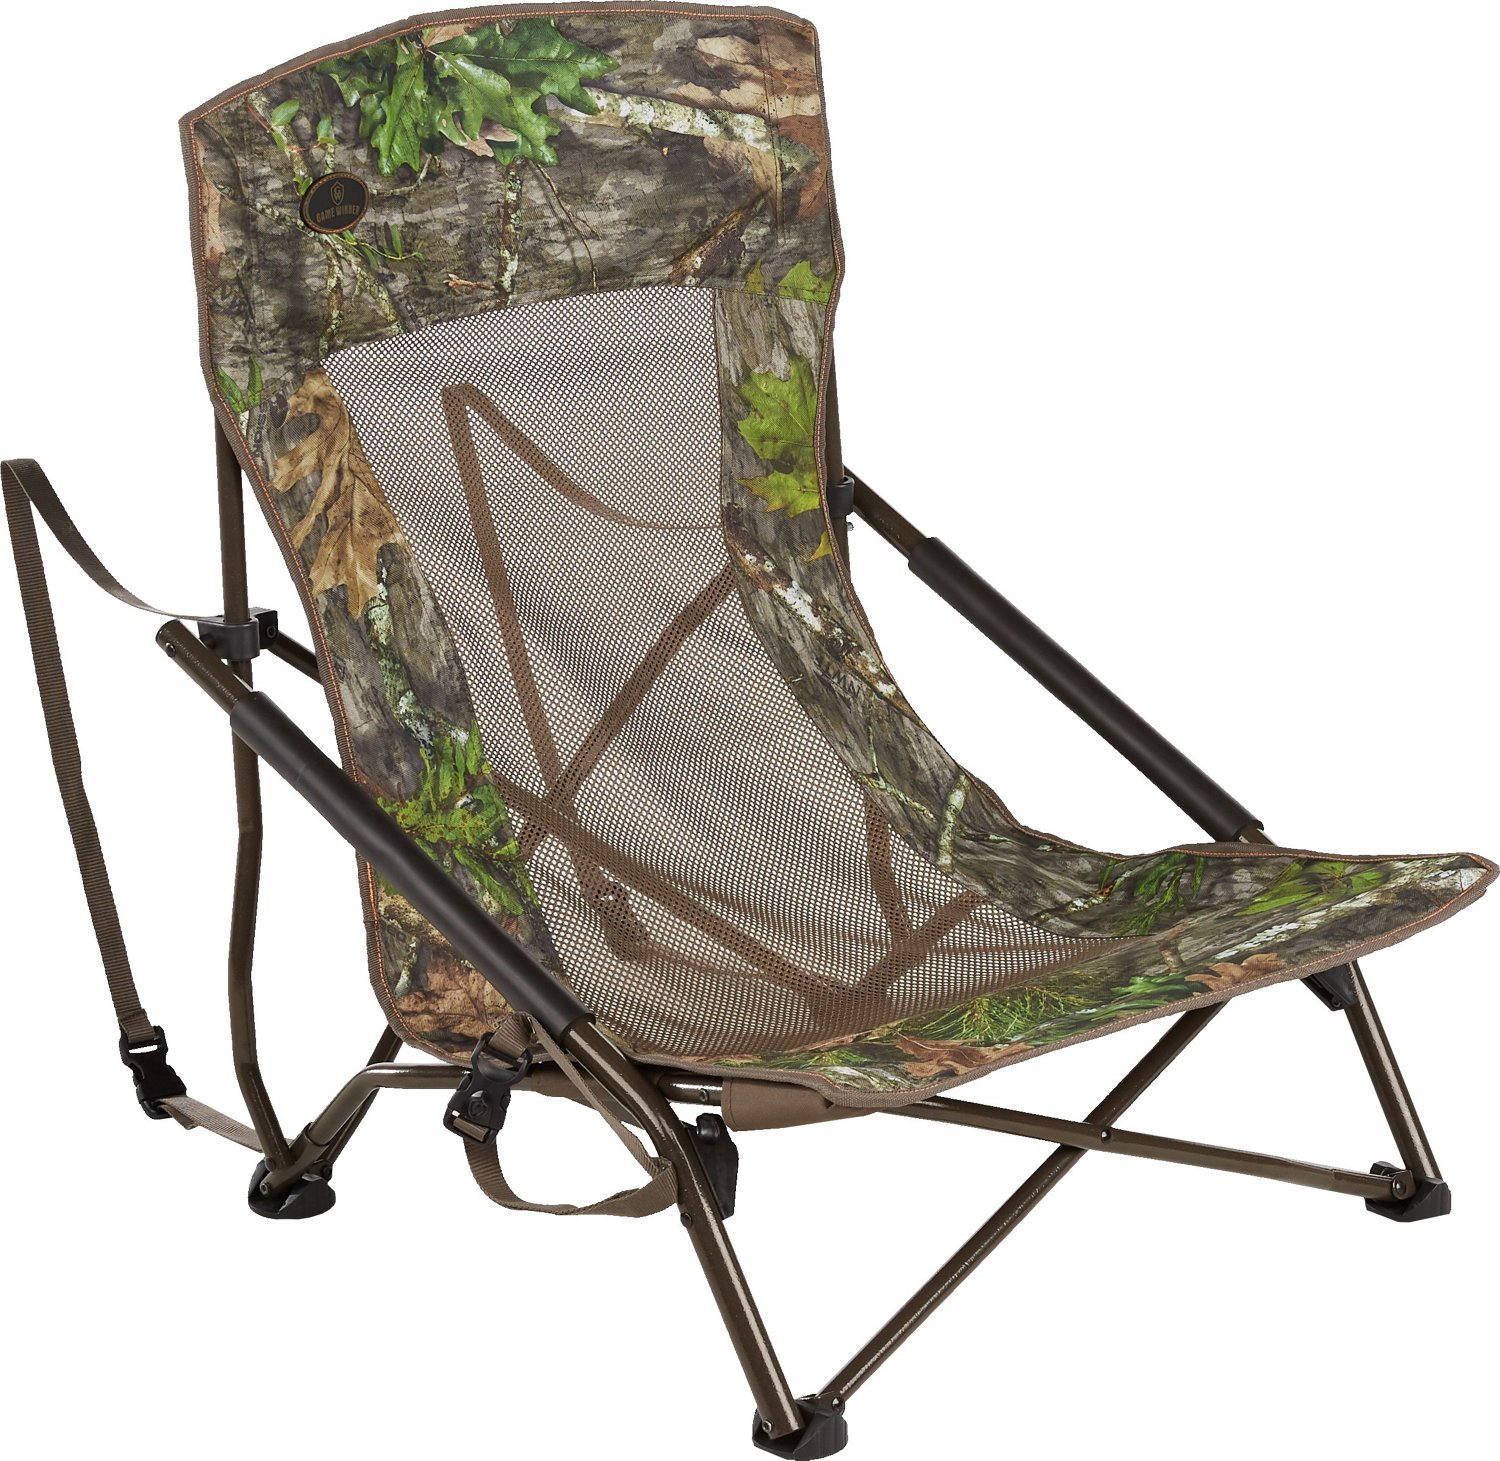 summit trophy chair review breast feeding stool chairs hunting seats blind low profile camo mesh turkey